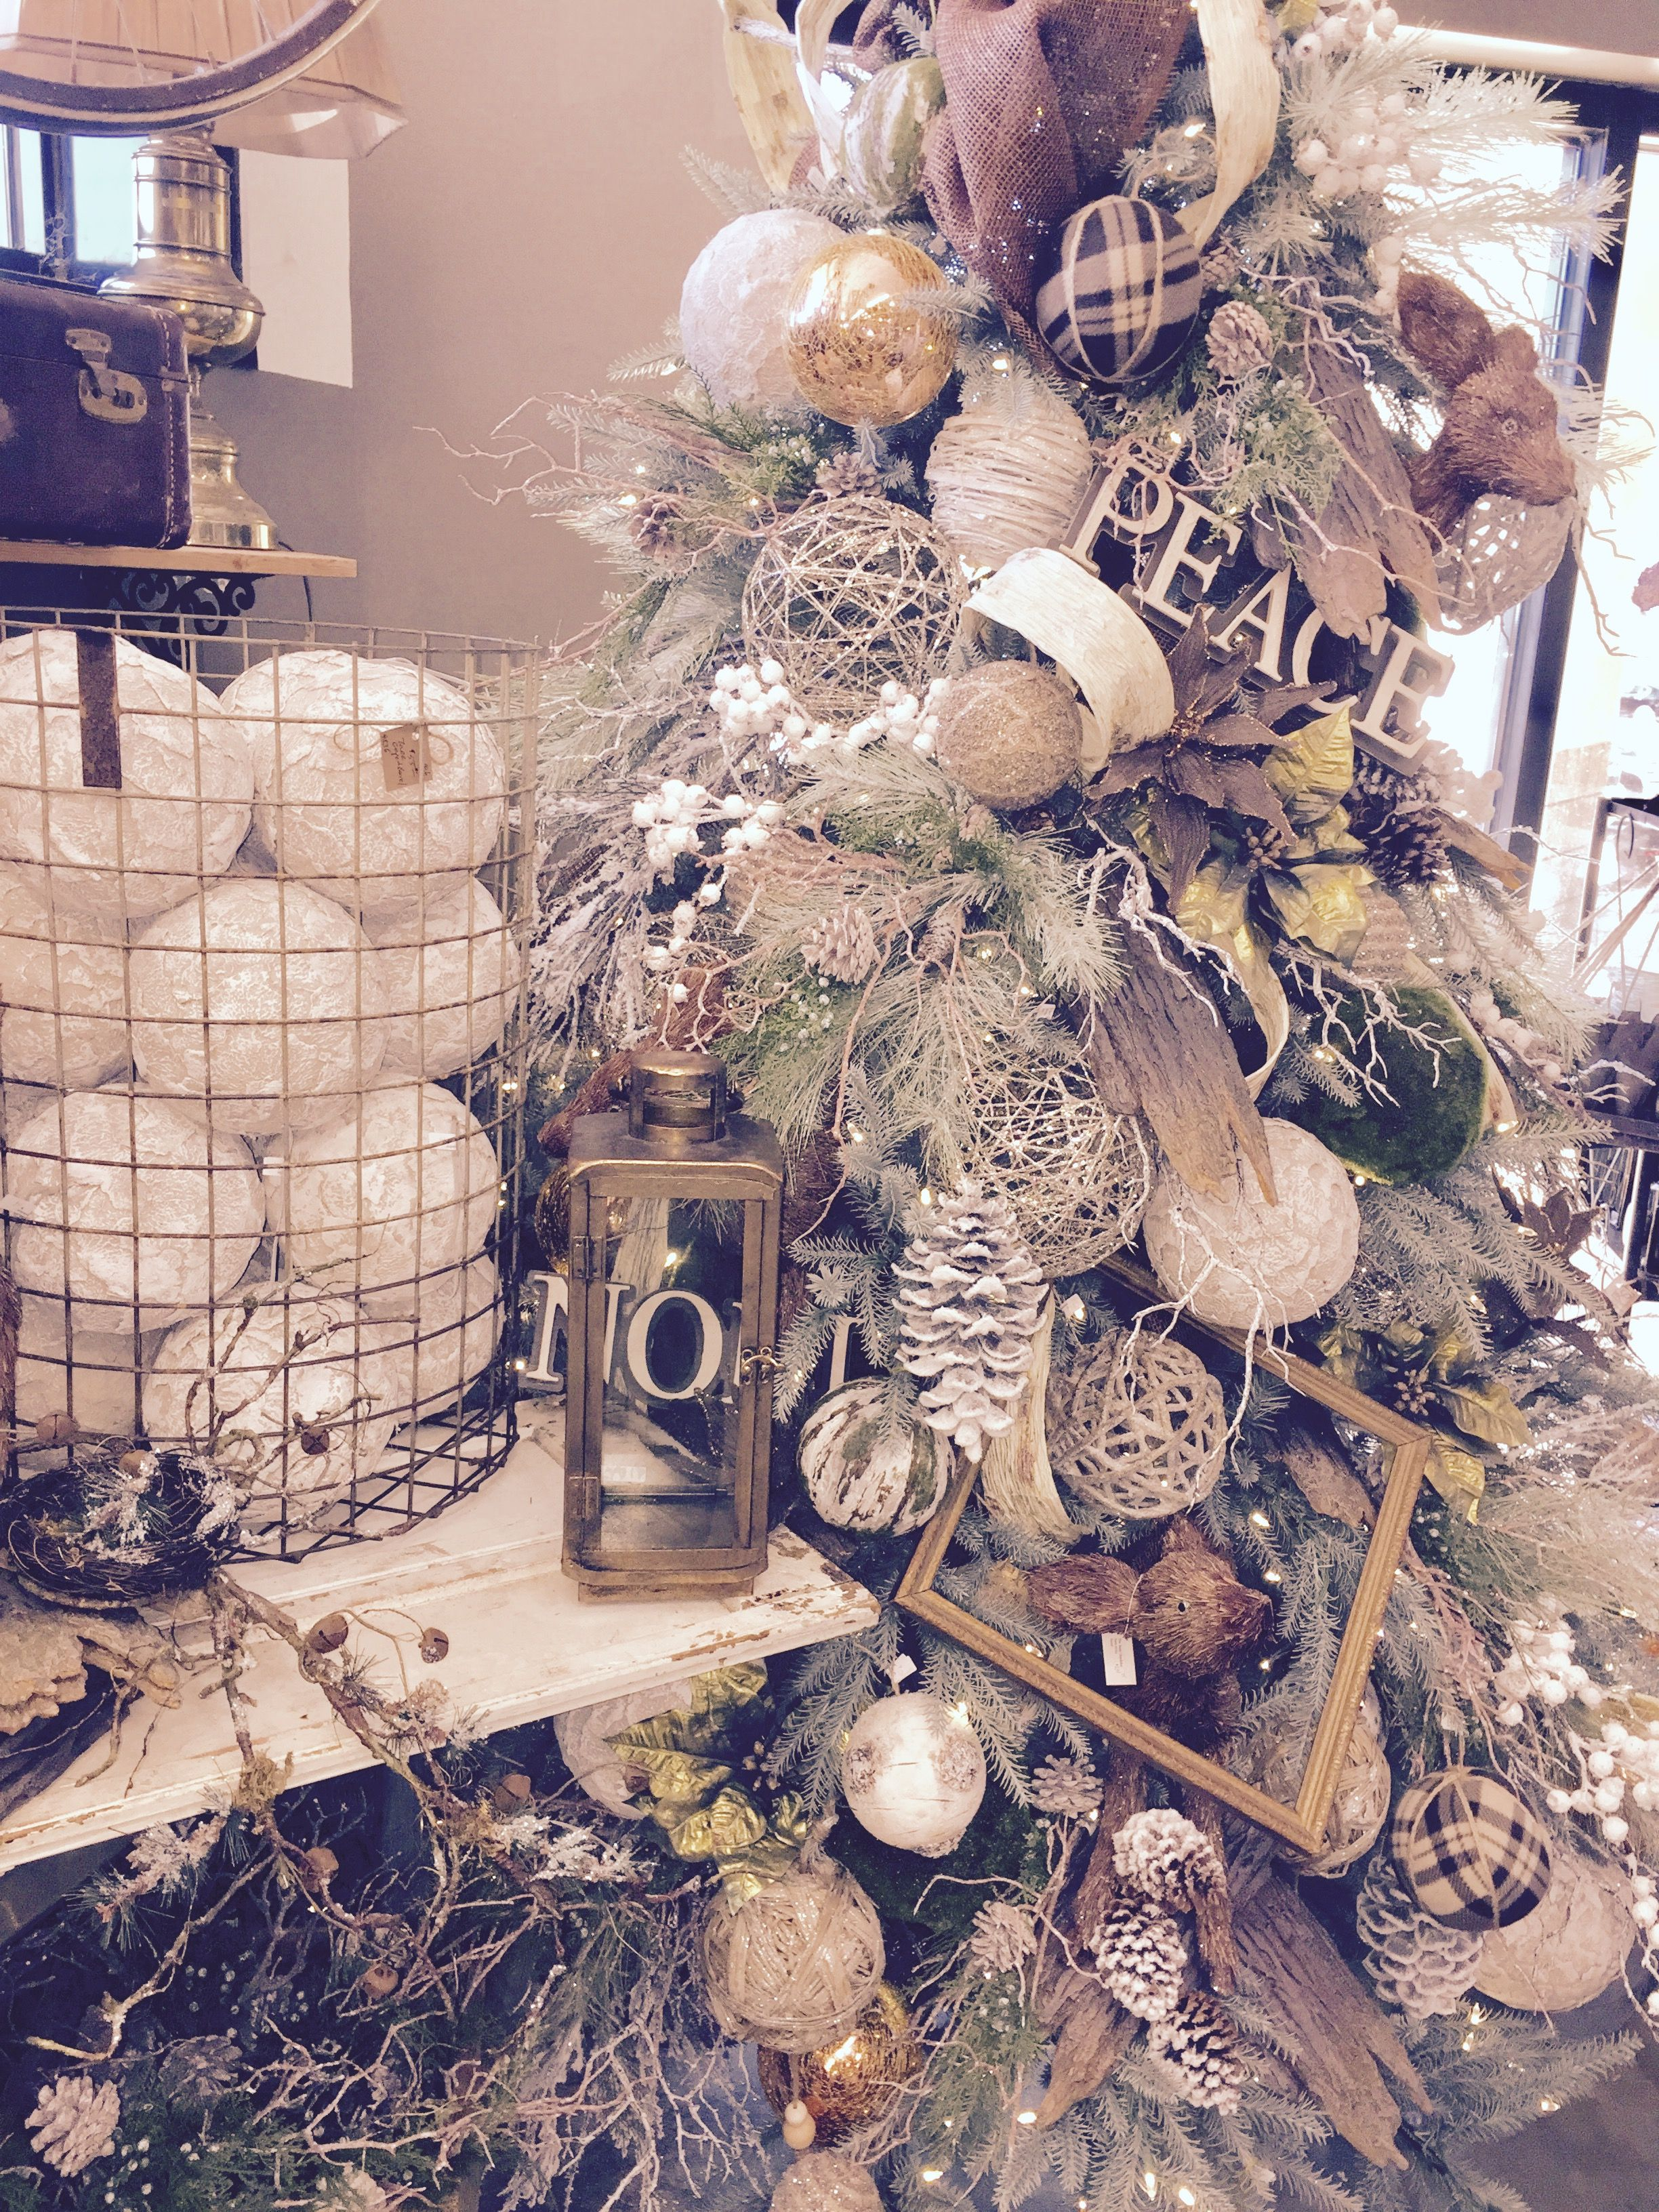 Holiday Shopping! The Rusty Chandelier Frisco Mercantile #holidayshopping #therustychandelier #friscomercantile